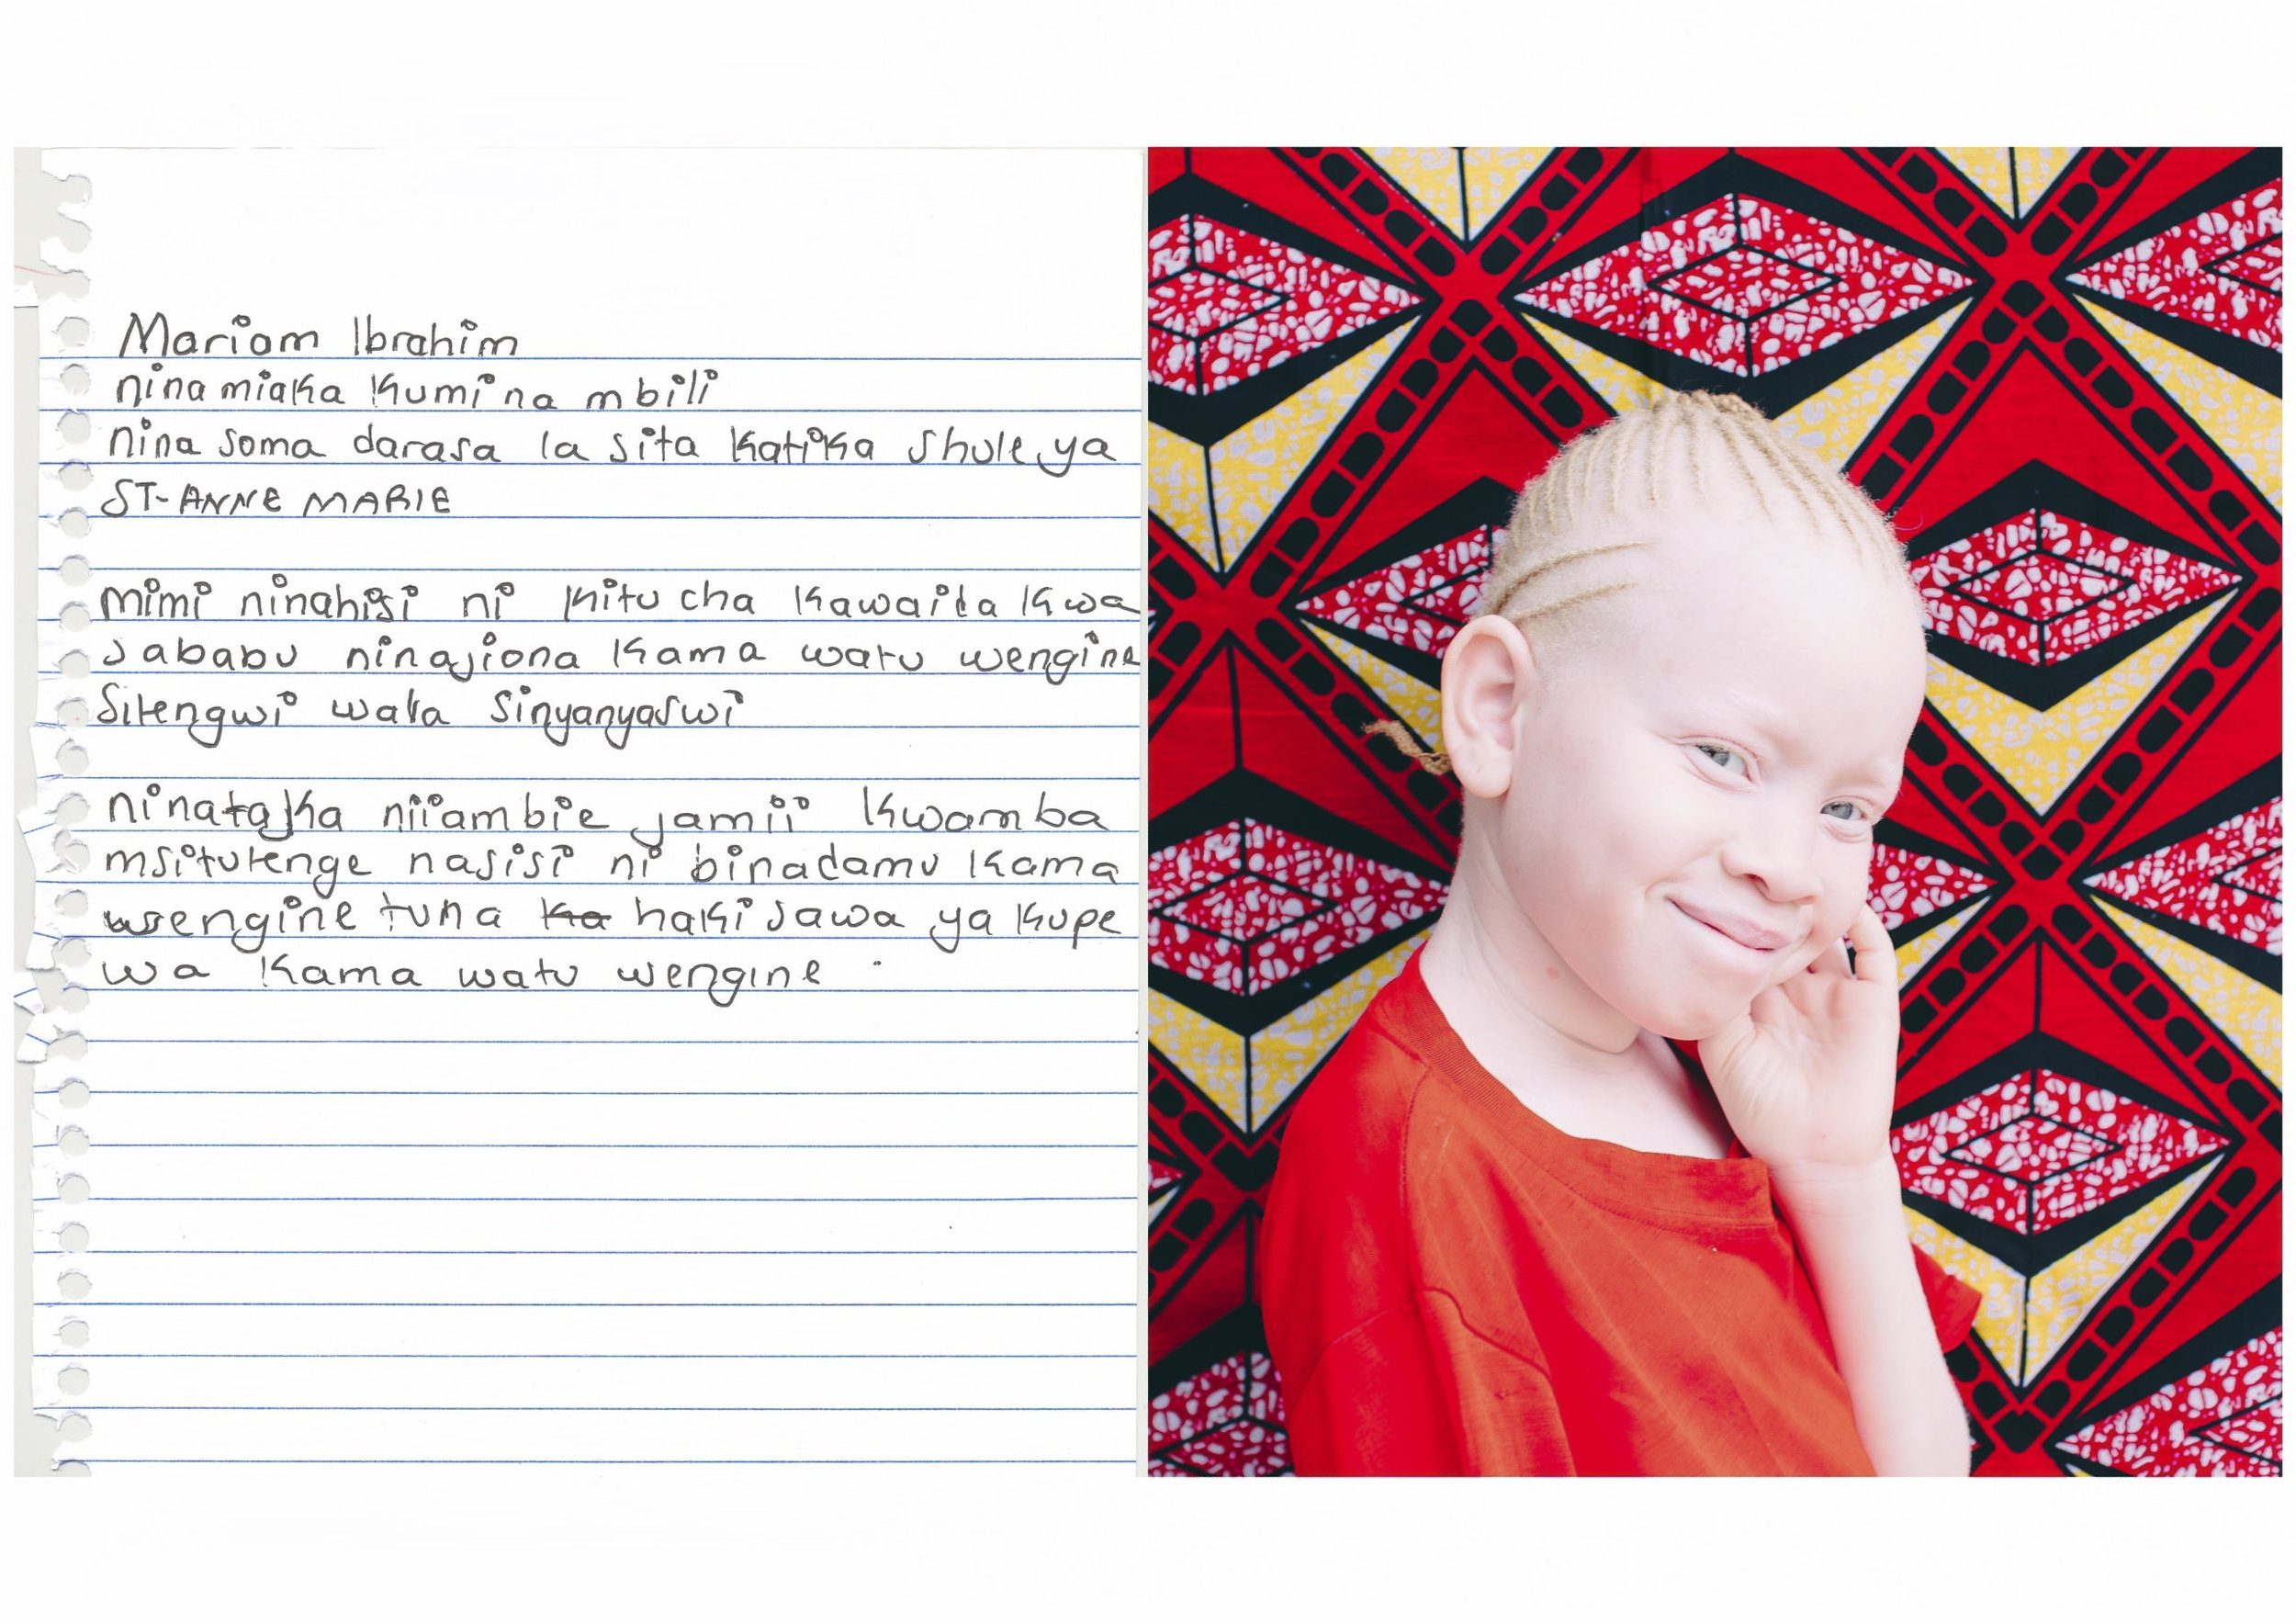 Mariam Ibrahim.    I am twelve years old.    I feel that albinism is a normal condition because I see myself just like other people, I am not isolated or discriminated.    I want to tell society that do not discriminate people with albinism because we are also human beings, like other people, we all have equal rights and we need to be loved like everybody else.